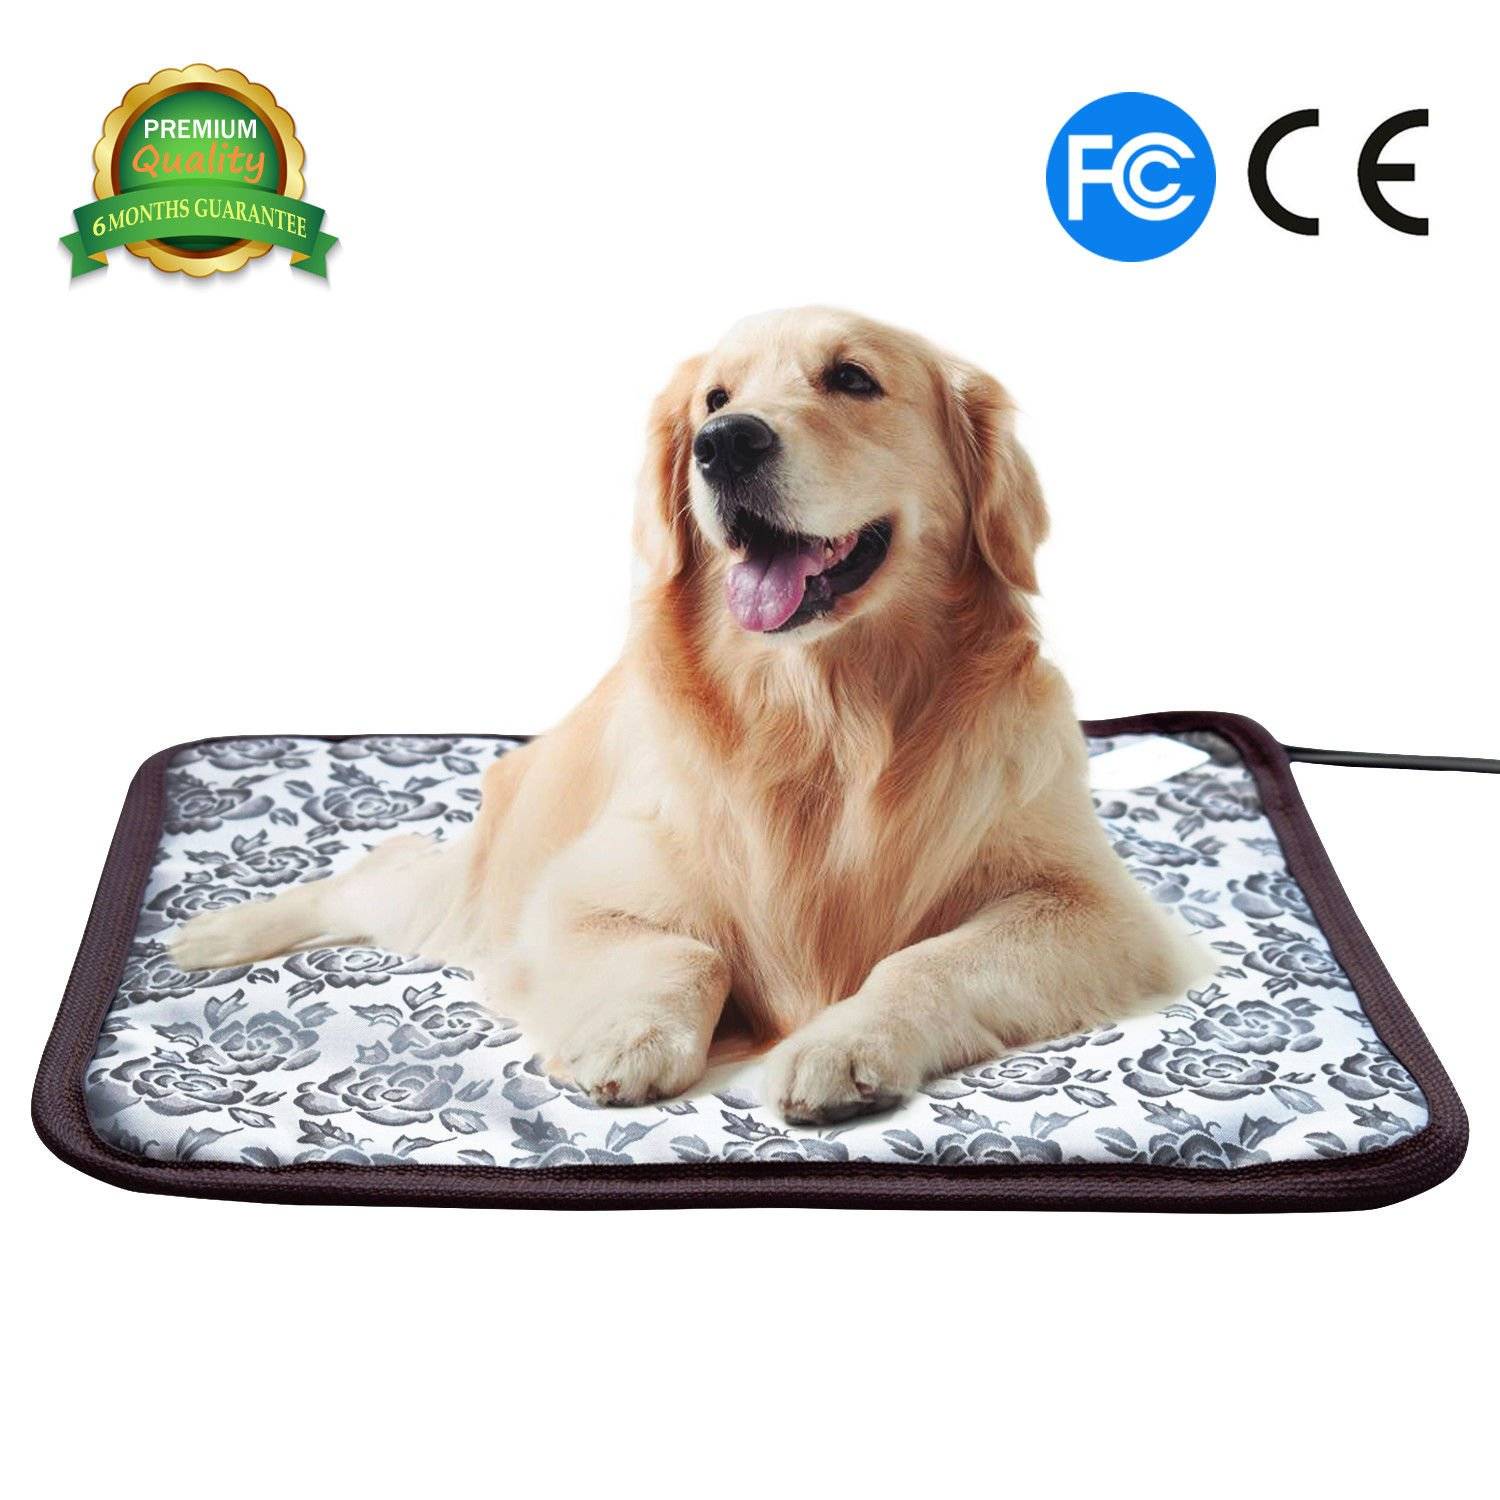 Pet Heating Pad Cat Heating Mat Waterproof Pets Heated Bed Adjustable Dog Bed Warmer Electric Heating Mat With Chew Resistant Steel Cord (17.7x17.7'', Flower)